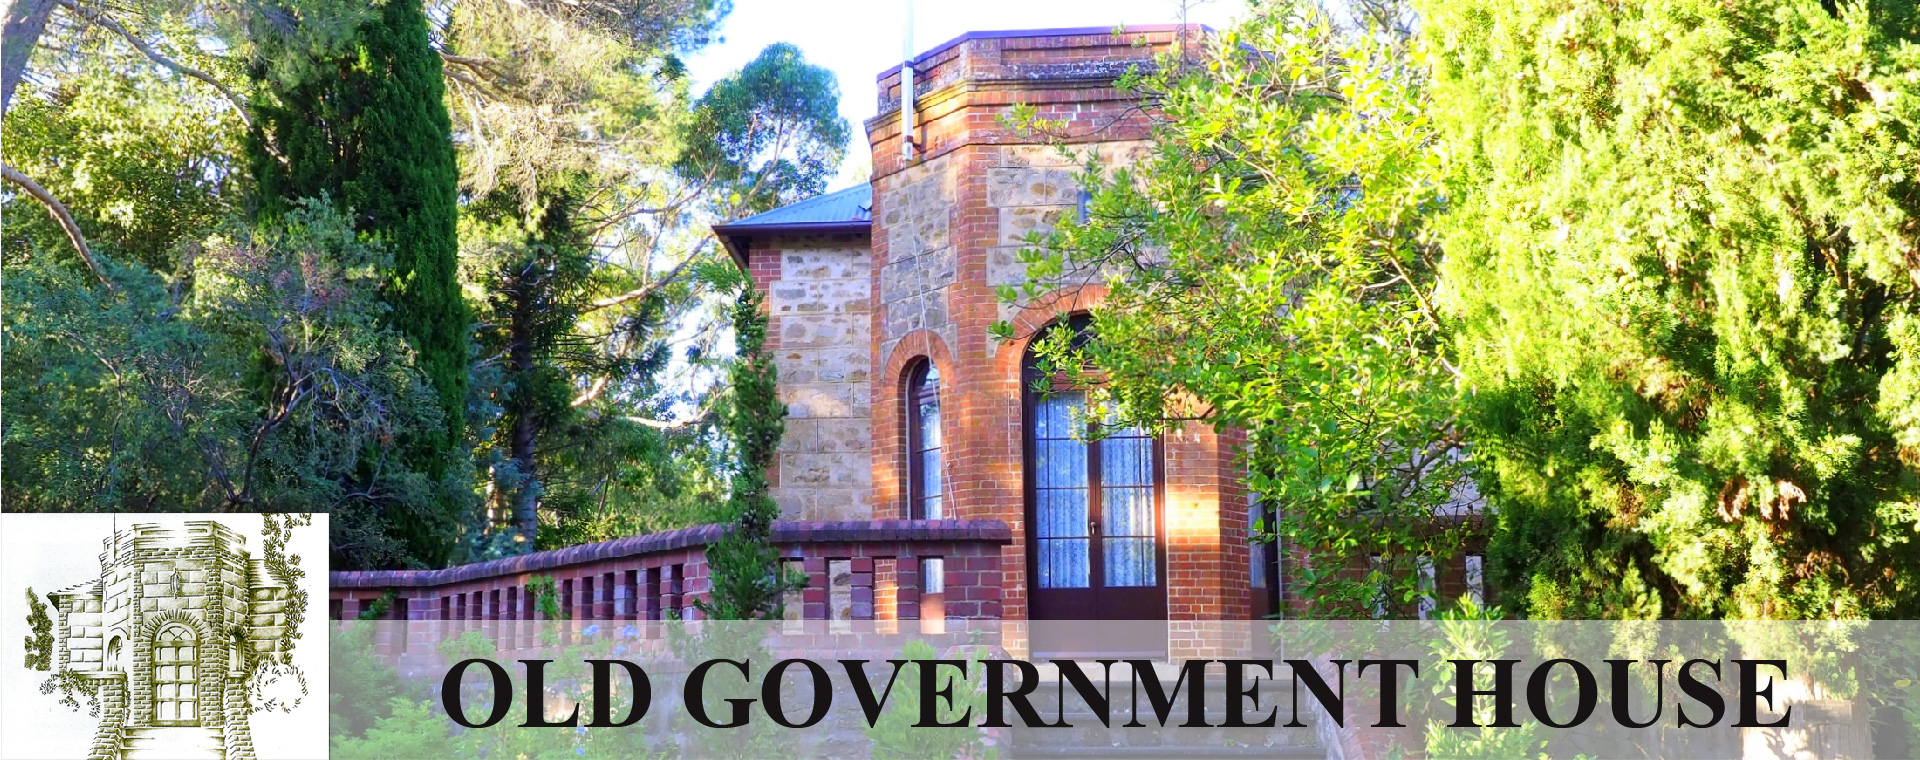 Friends of Old Government House